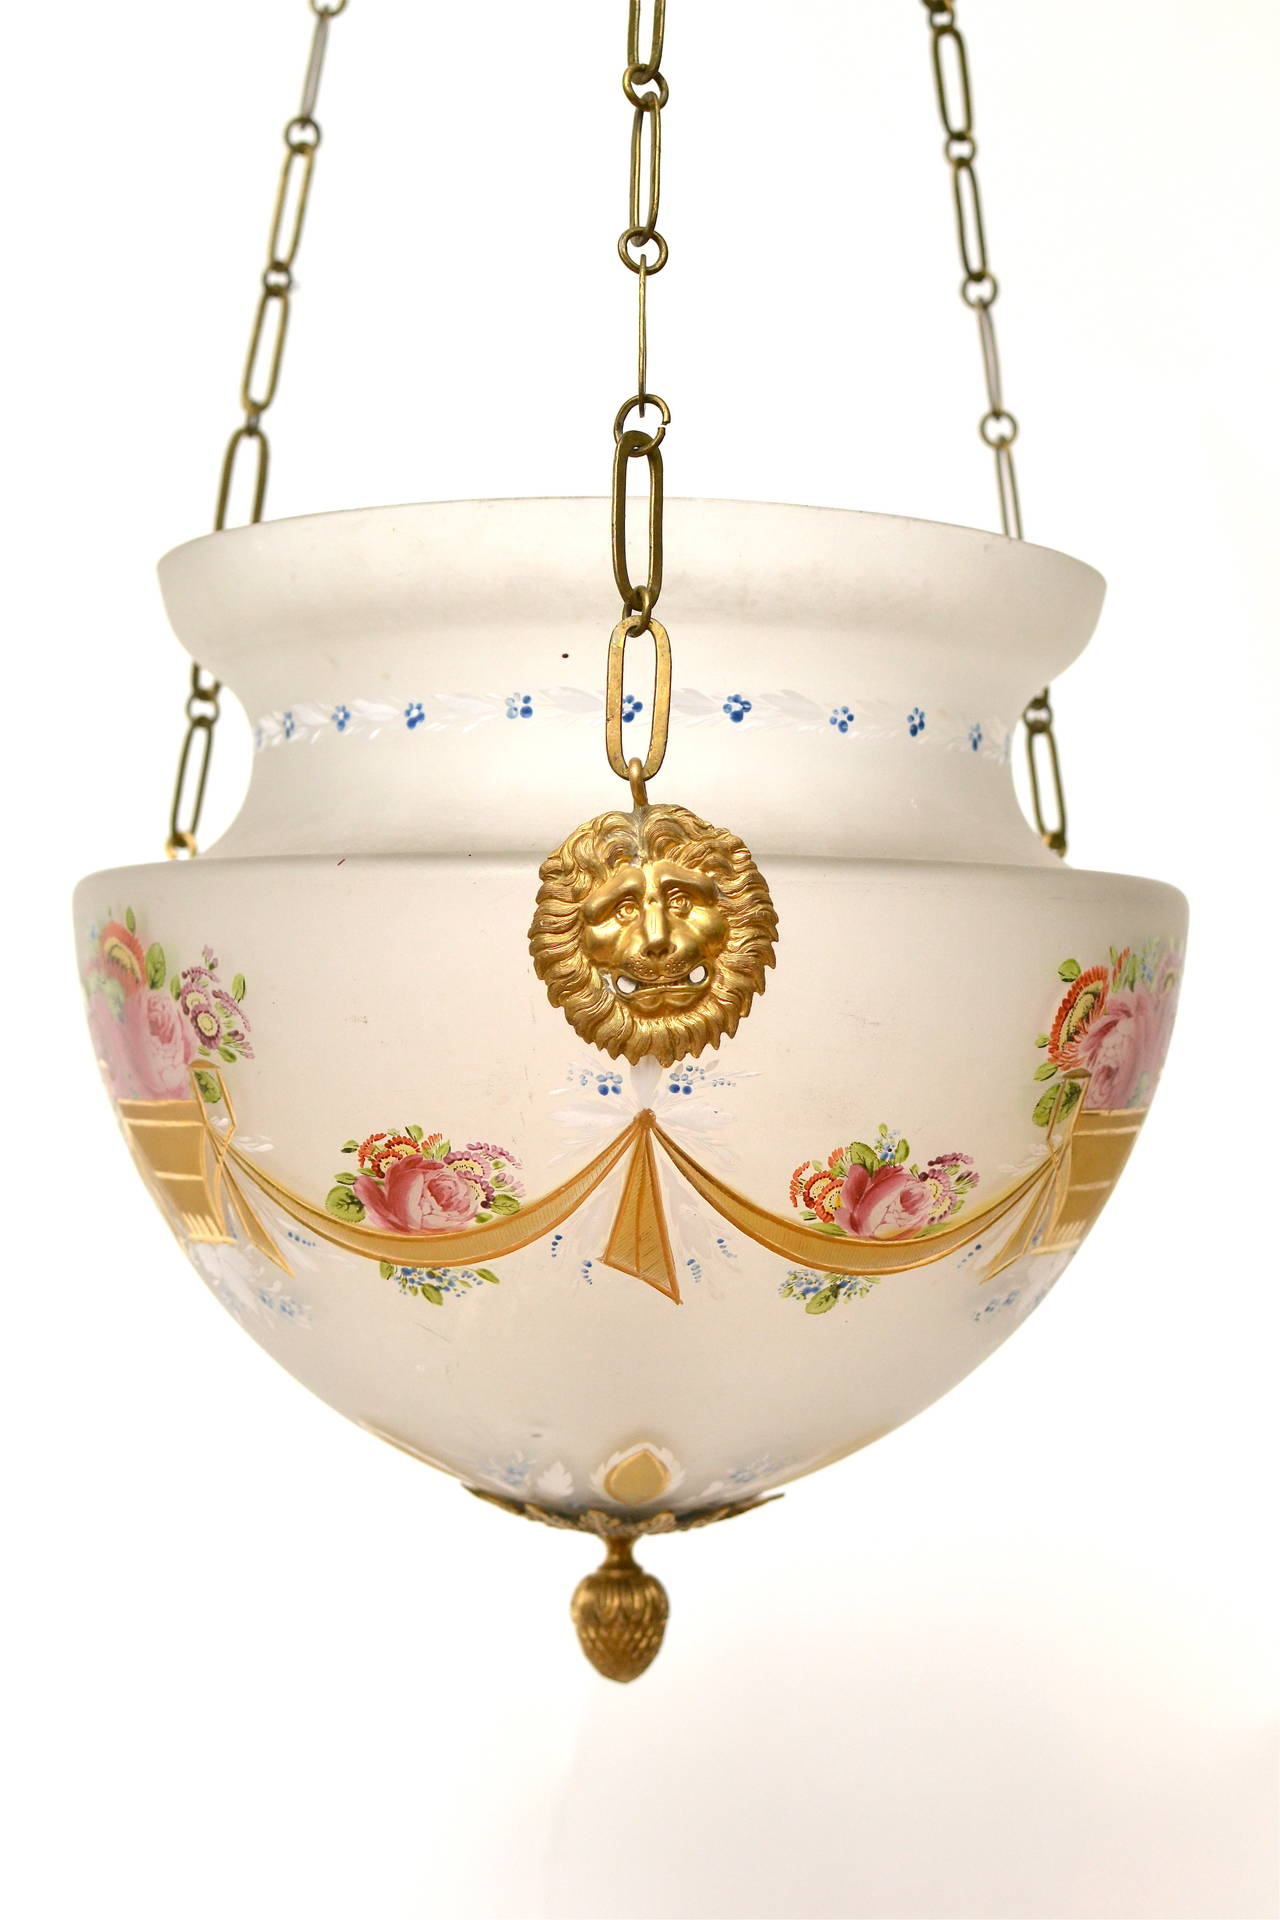 An Empire hanging glass lamp/lantern with gilt bronze mounts with one candleholder on the inside, early 19th century. The glass painted.